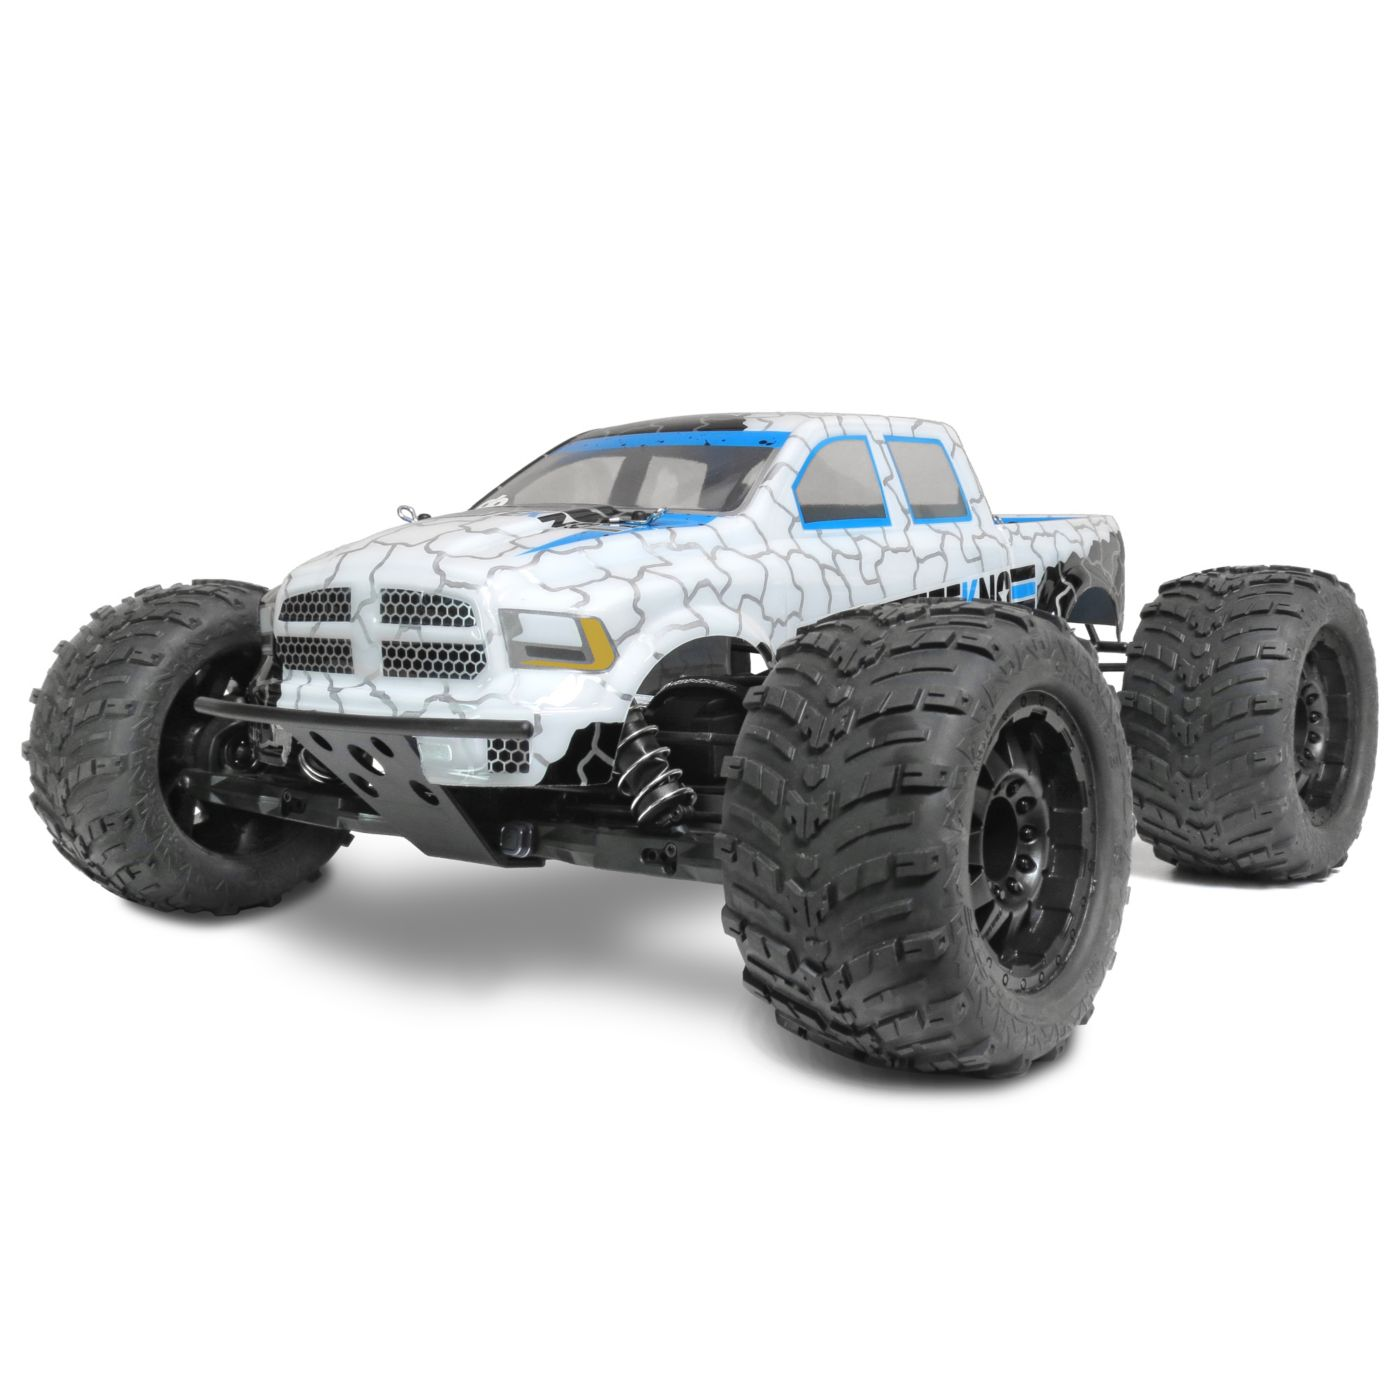 Image for 1/10 MT410.3-1 4WD Electric Monster Truck Kit from HorizonHobby